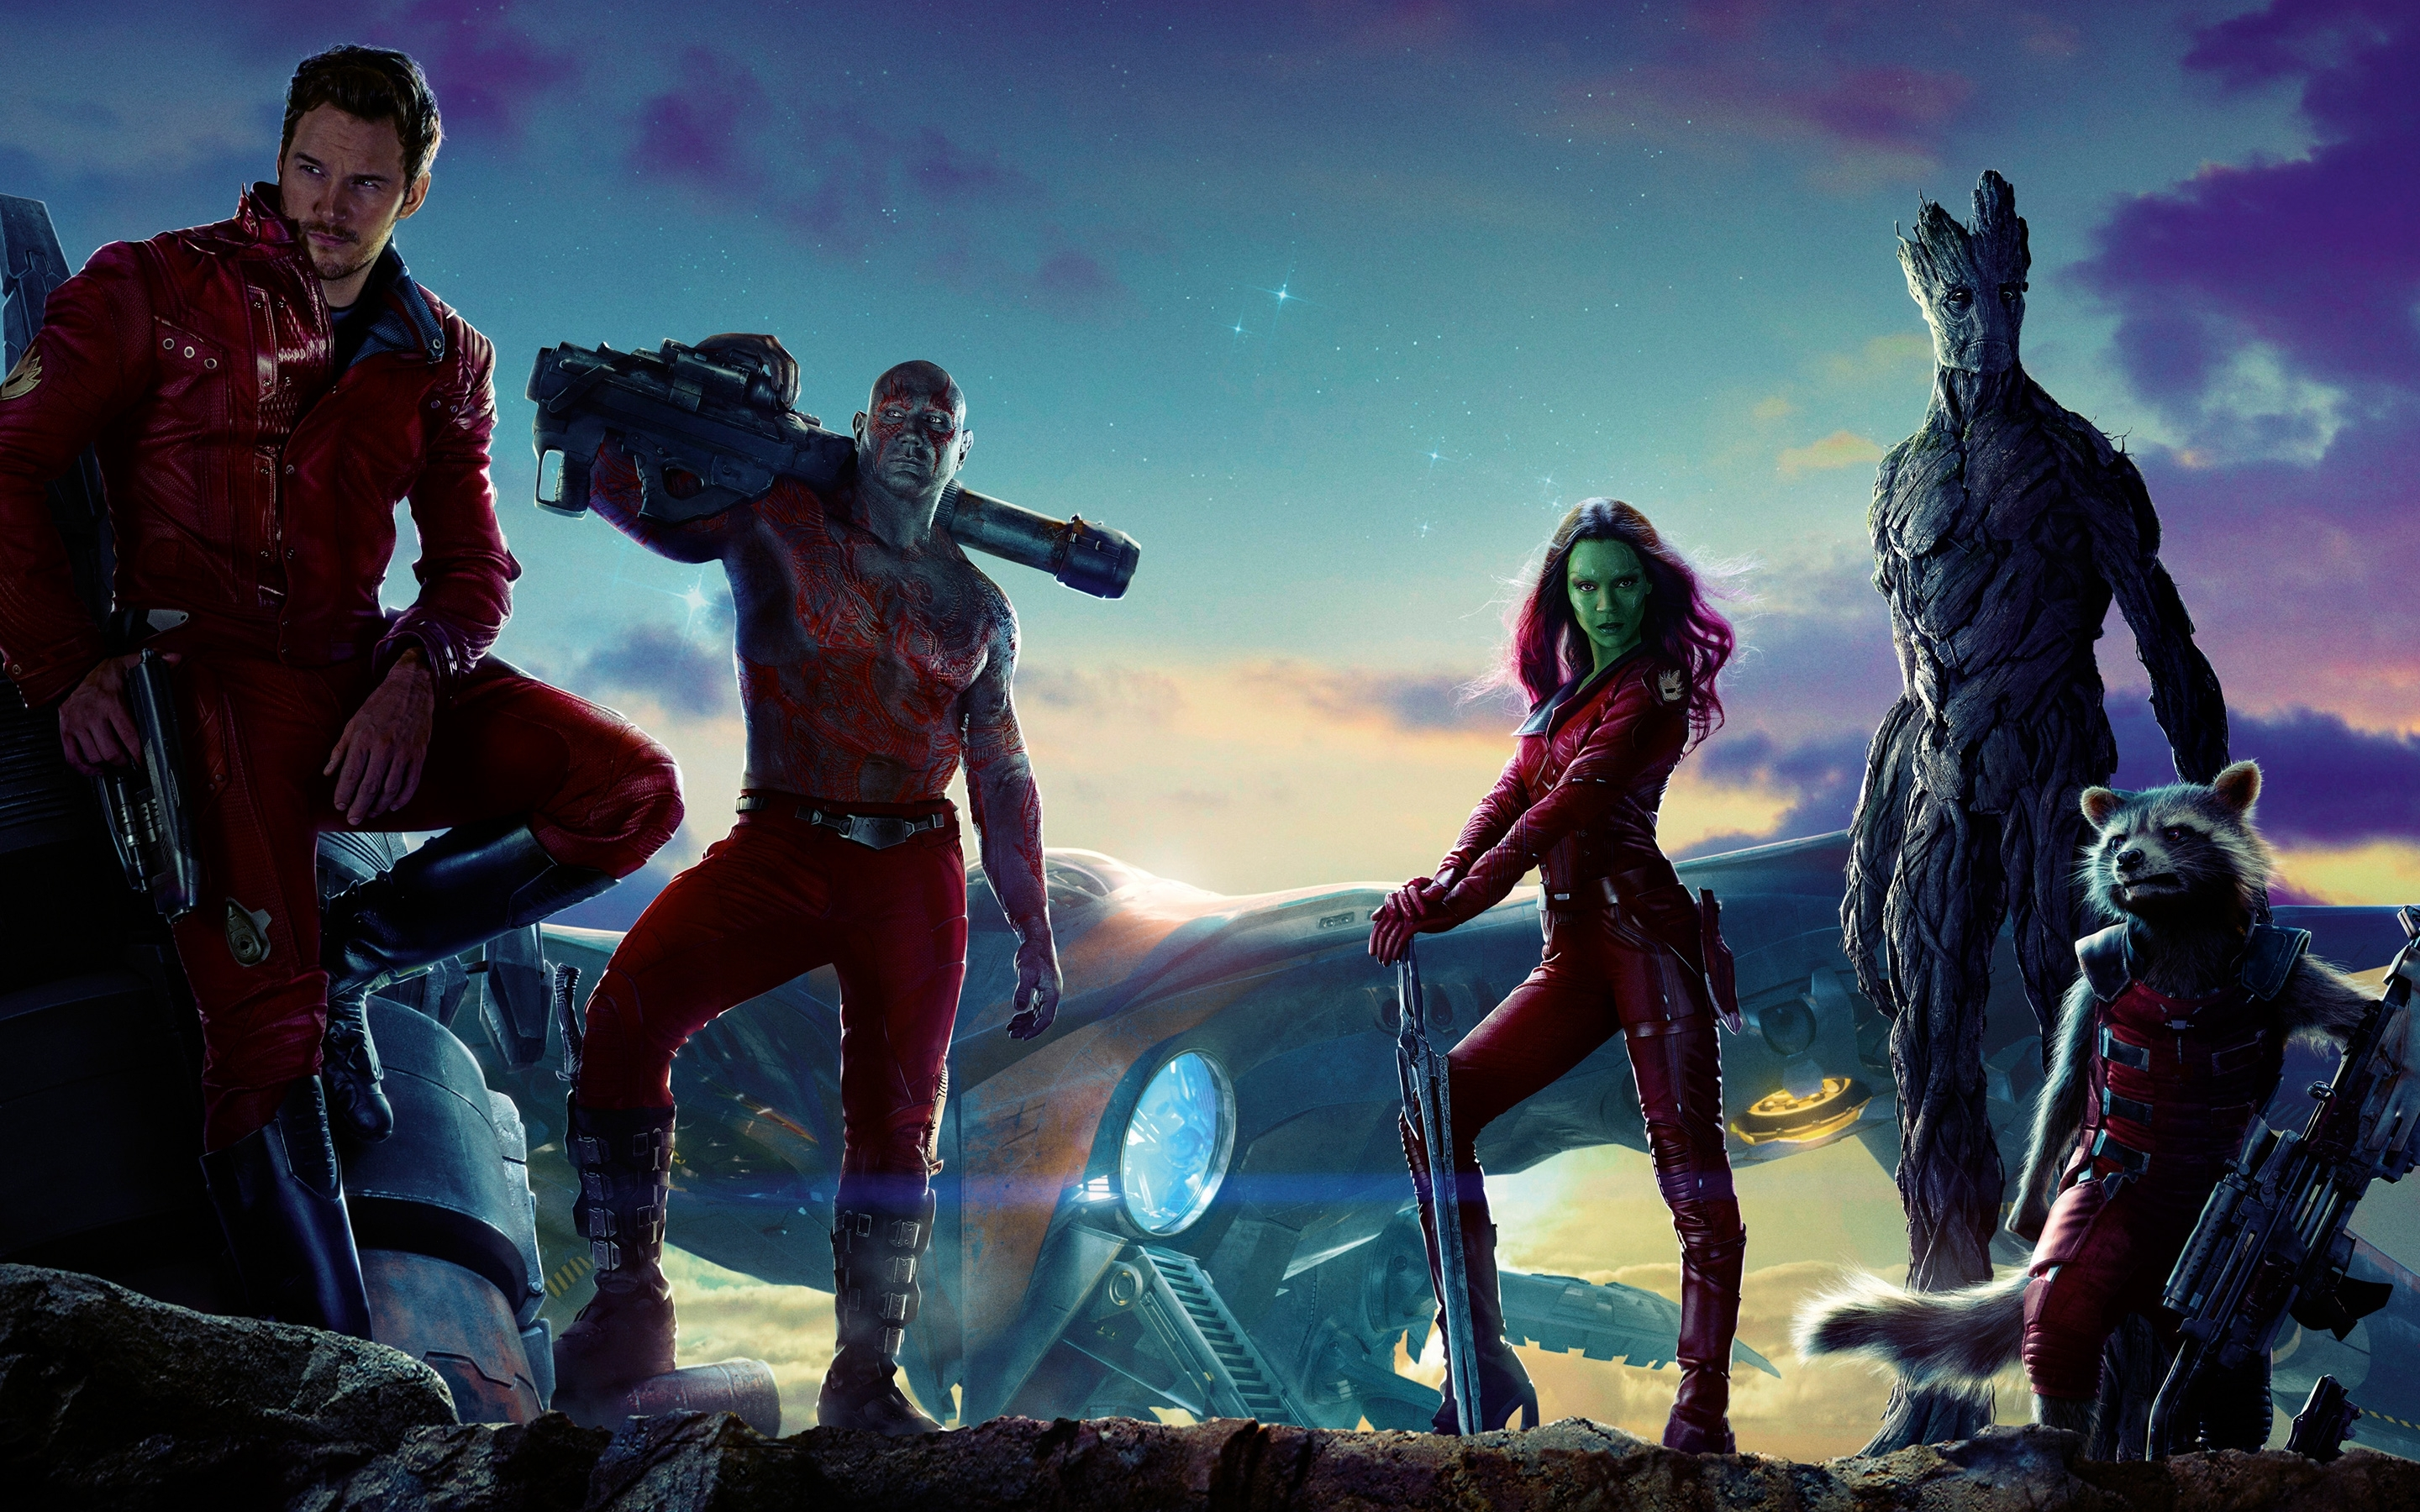 guardians of the galaxy movie wallpapers | hd wallpapers | id #13275